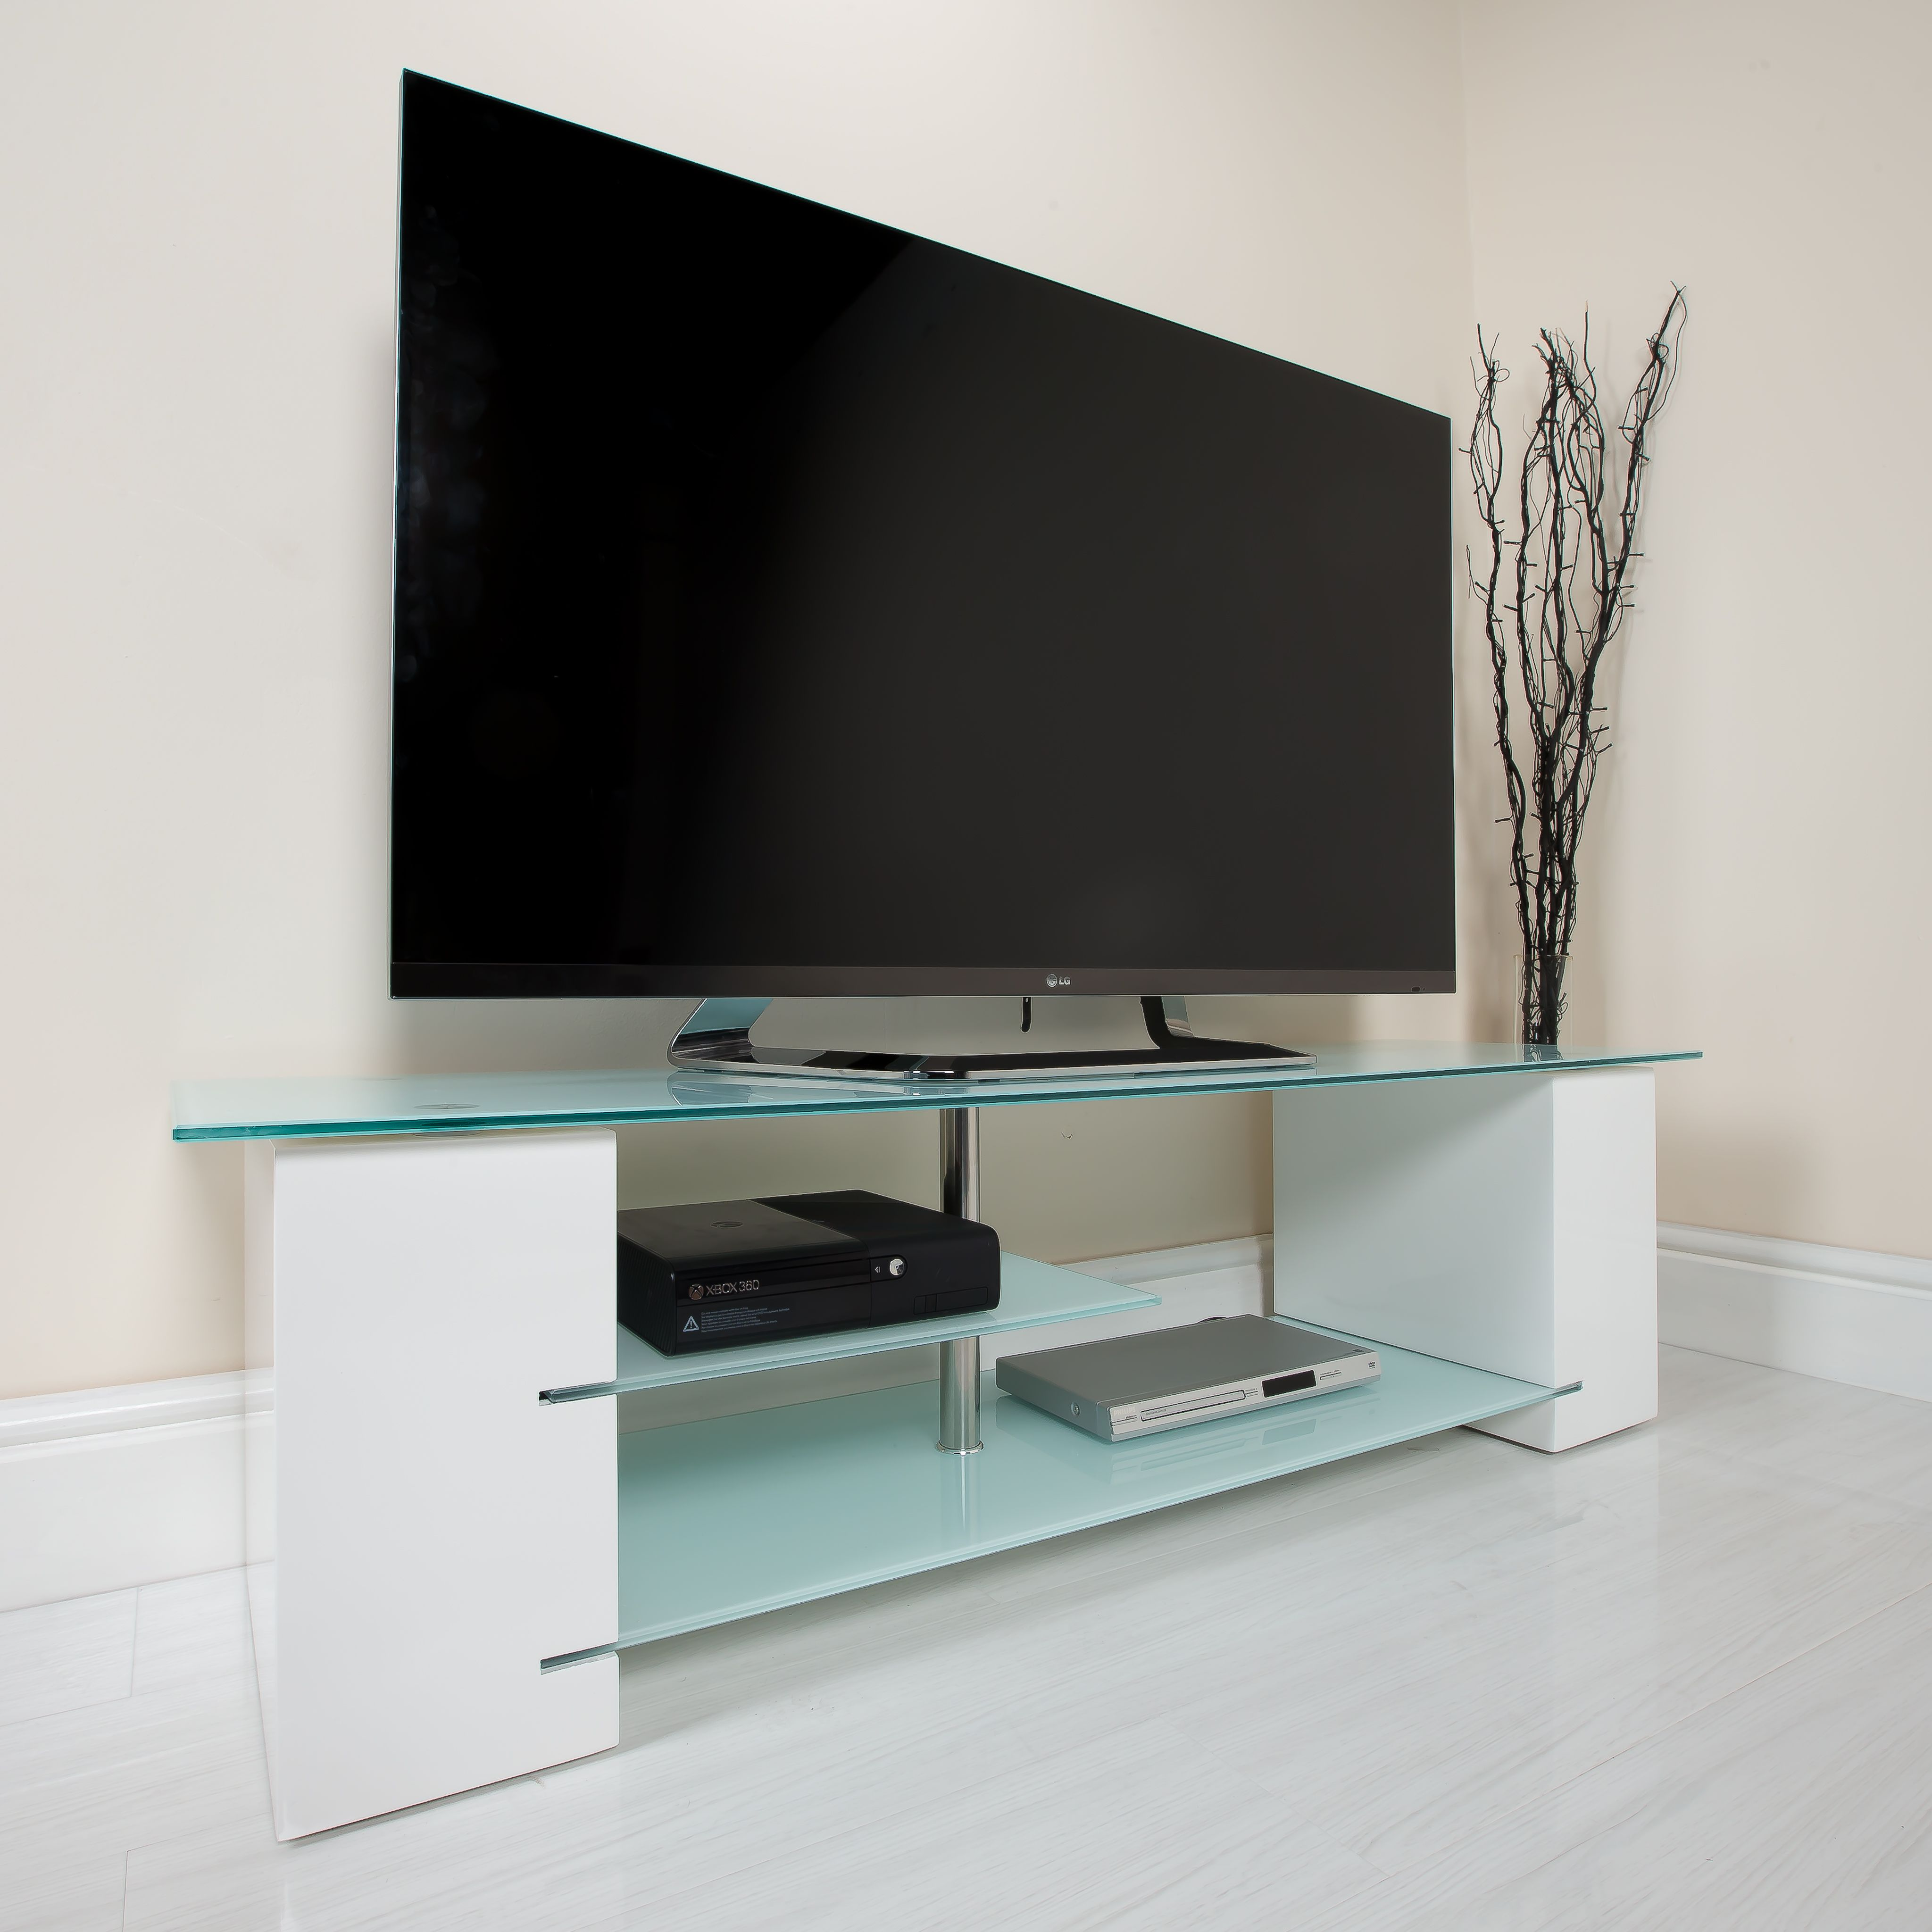 living buffet curtains on tv high livings ashley stand furniture budget fireplace chair stands and a excellent decoration with collection book carpet room